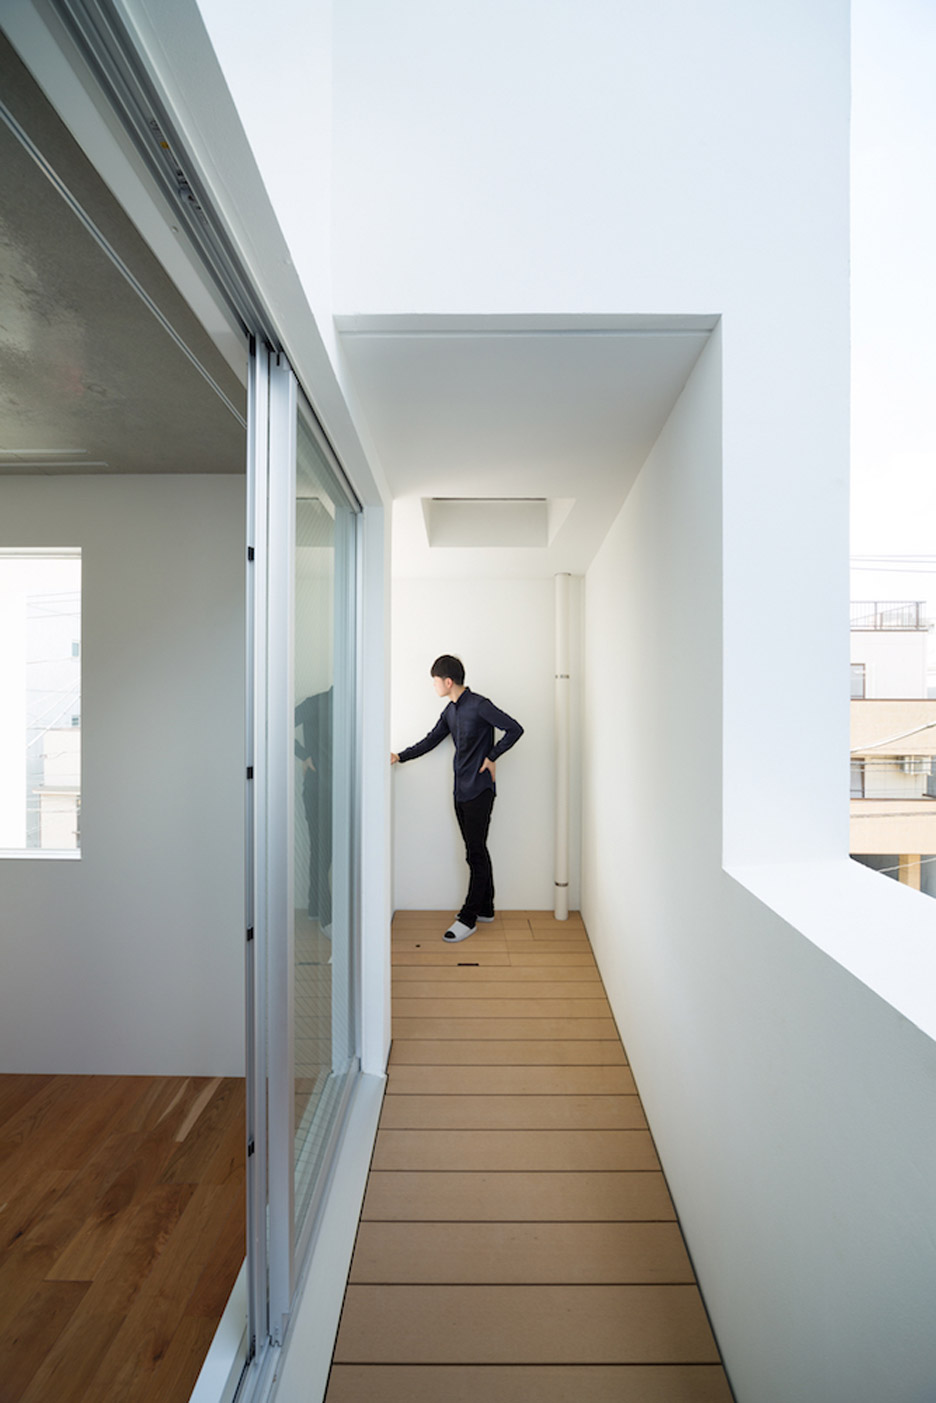 Kitasenzoku Apartment by Tomoyuki Kurokawa Architects